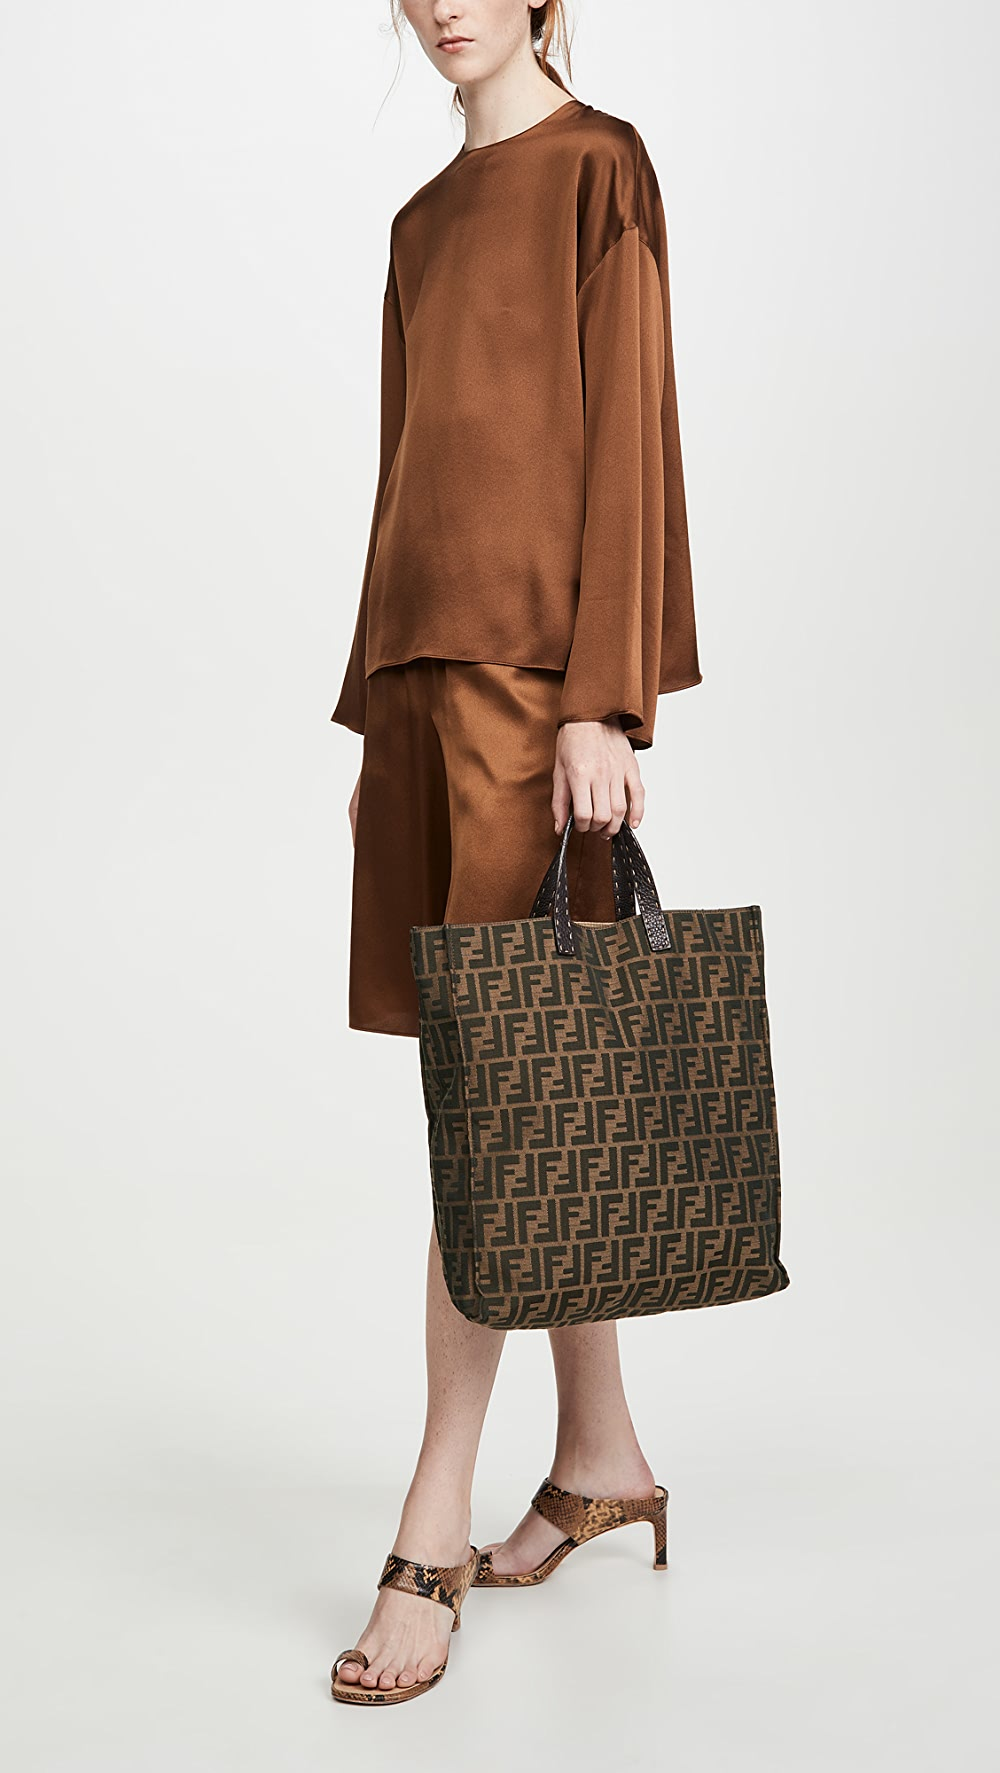 100% Quality What Goes Around Comes Around - Fendi Brown Zucca Tote Bag Elegant And Sturdy Package